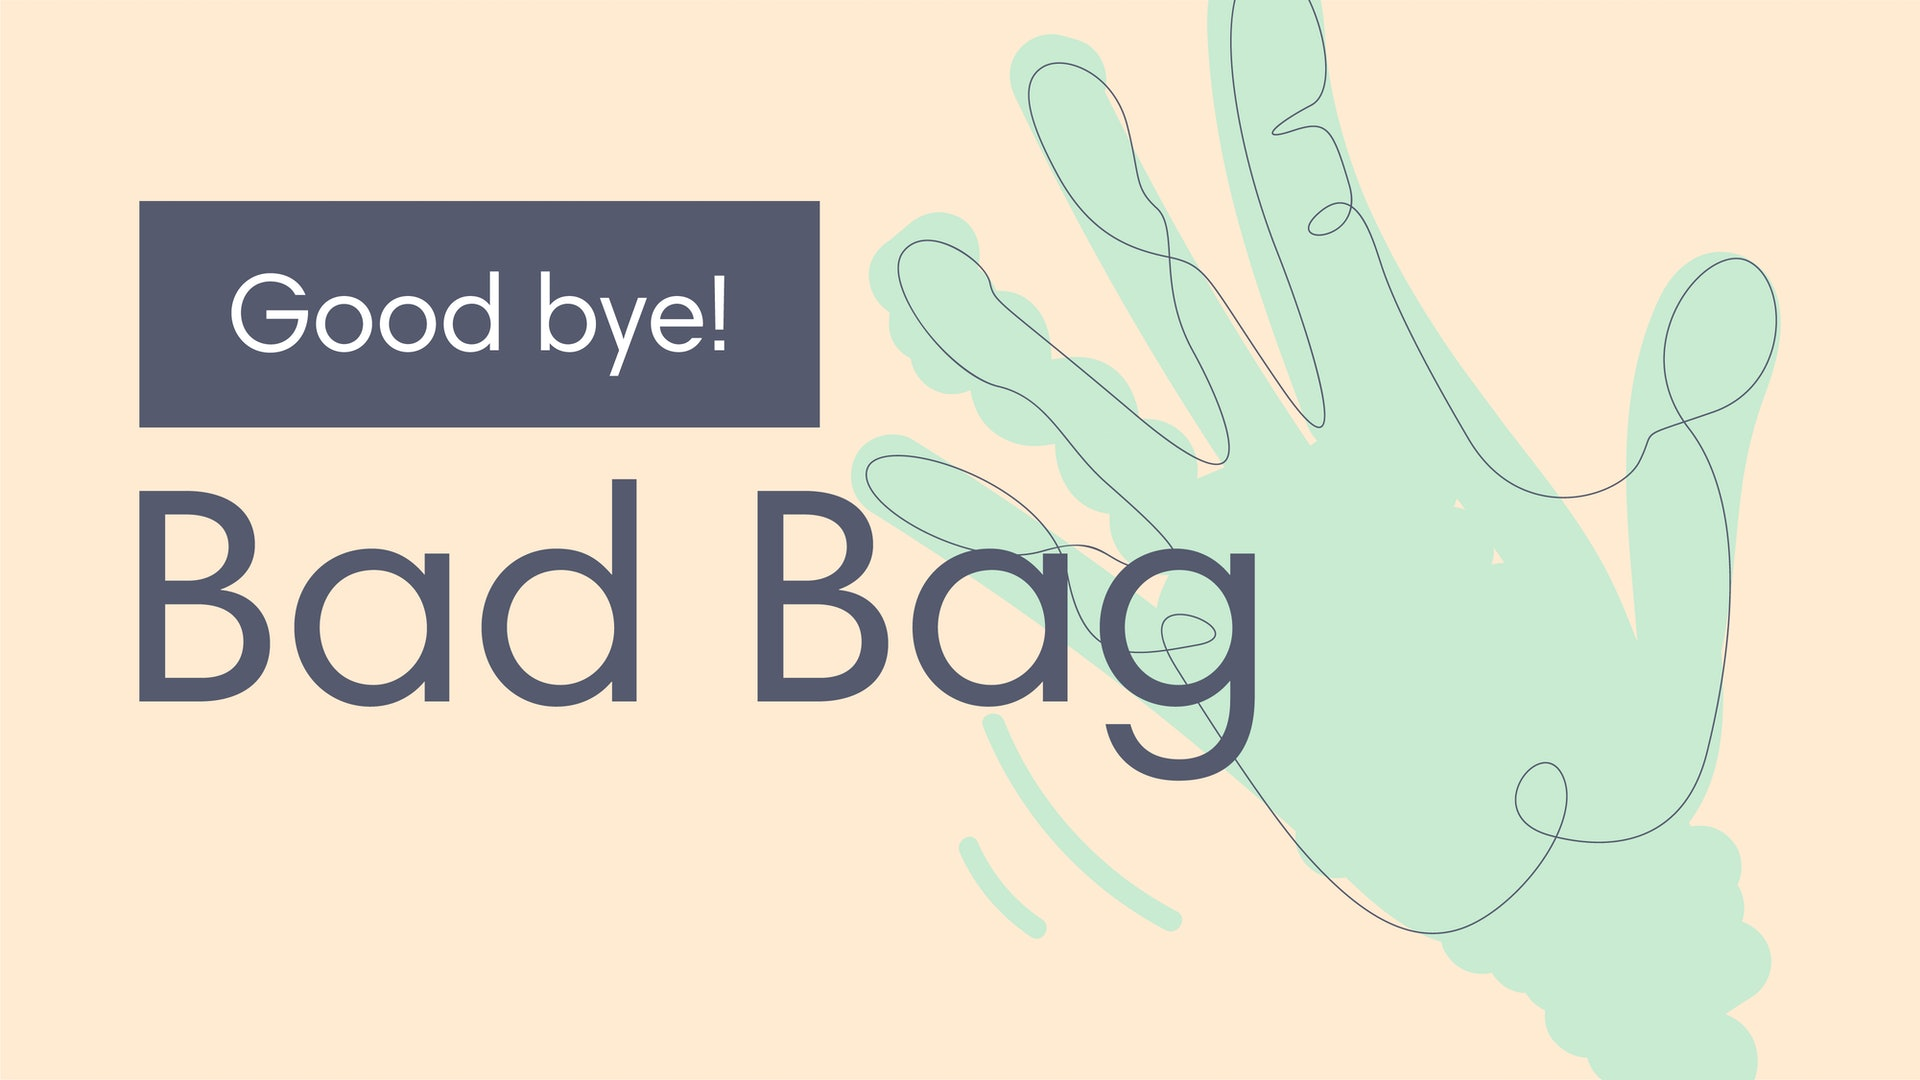 Veriff says goodbye to plastic bags - and you should too!